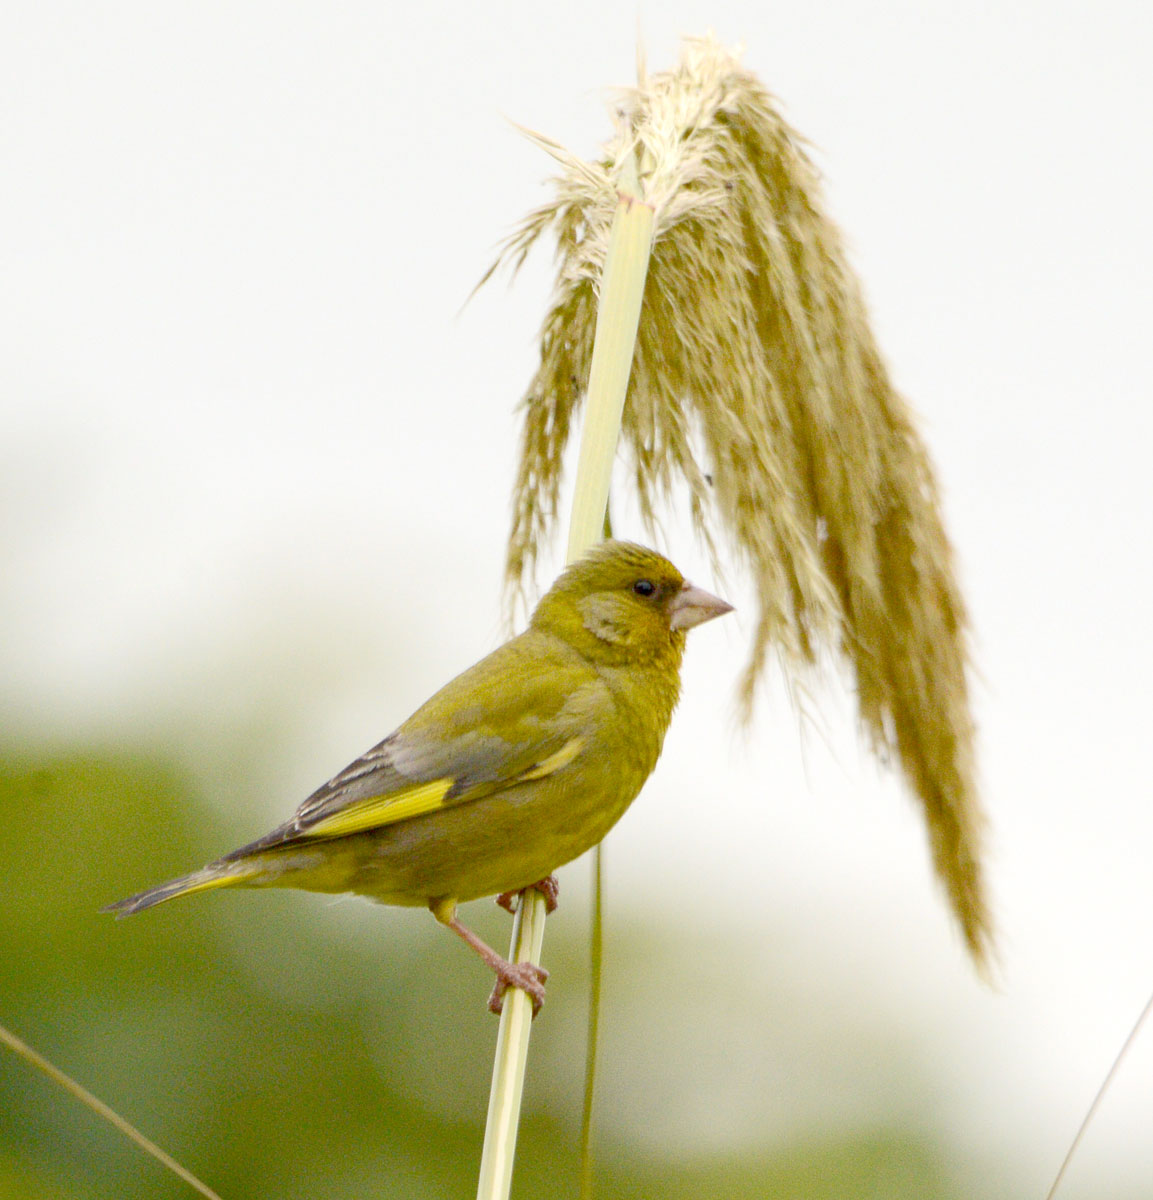 Greenfinch feasting on the pampas grass.